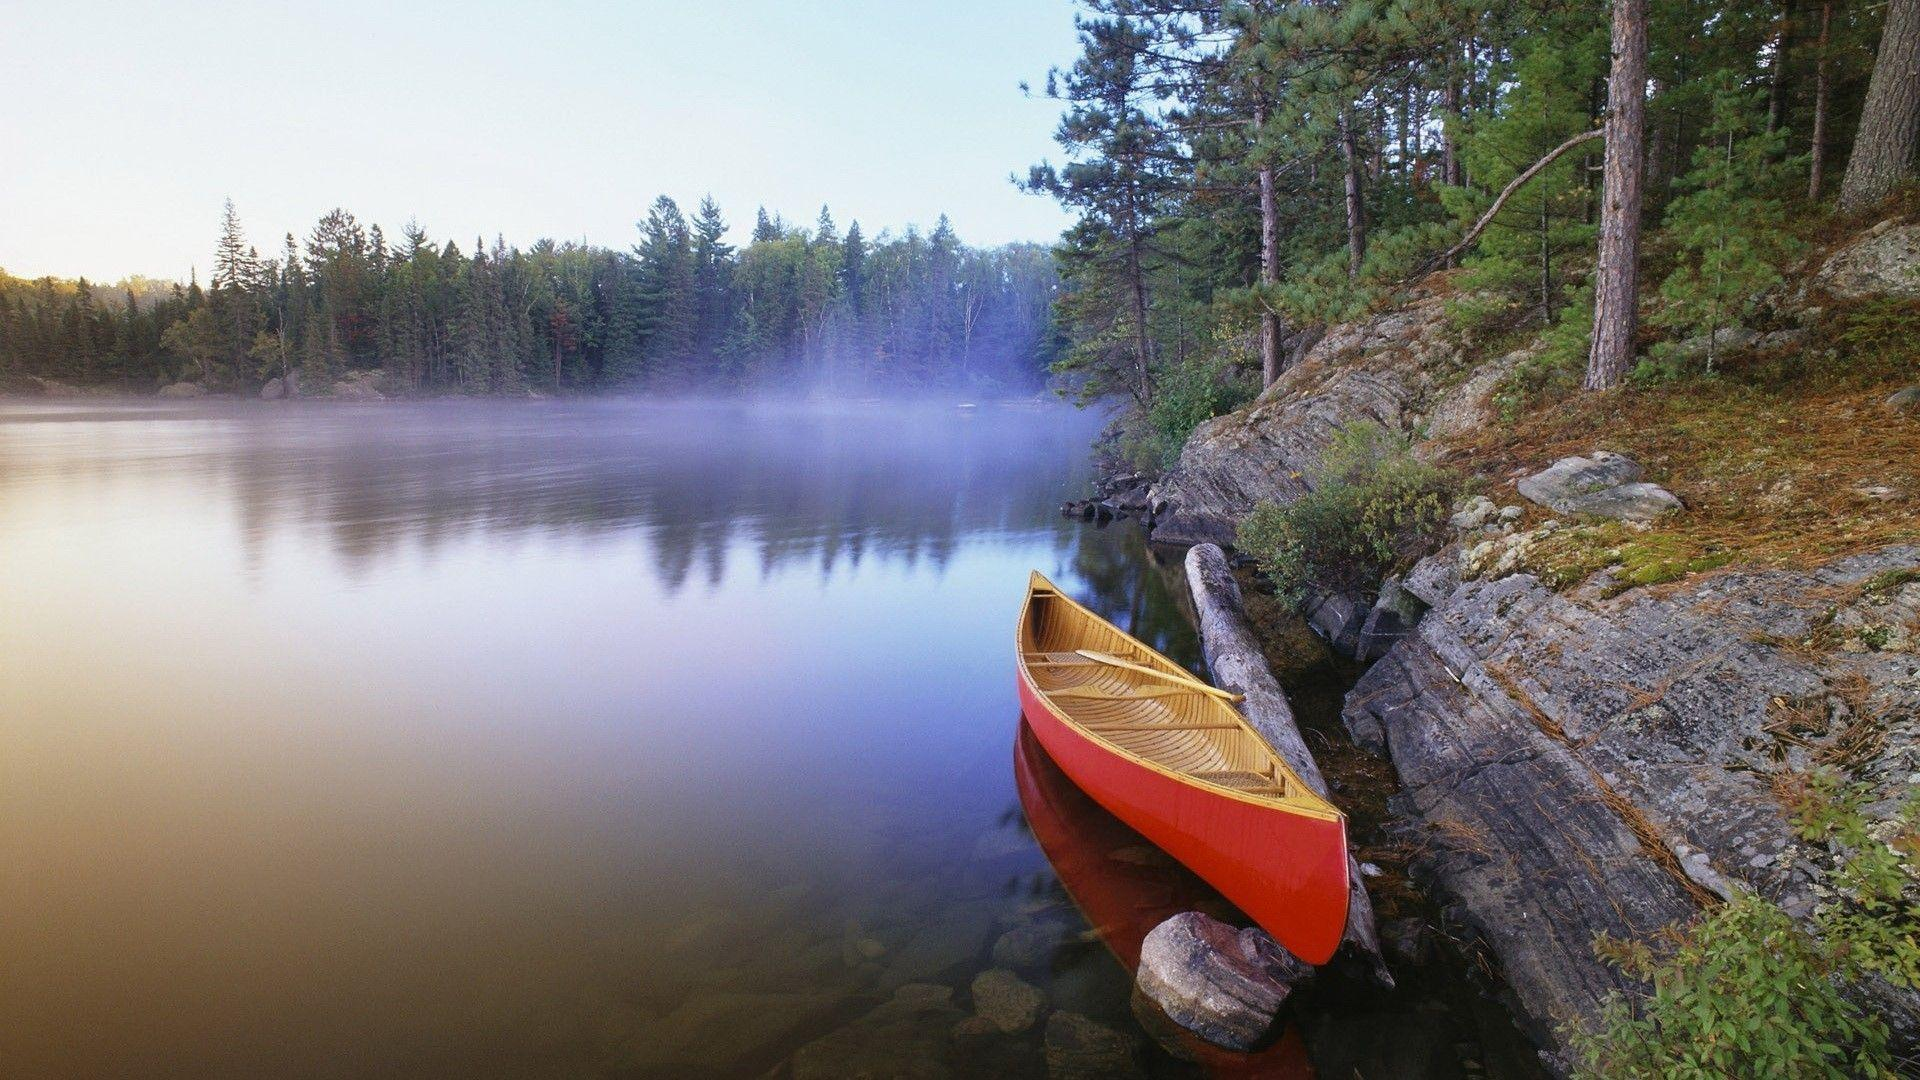 Canoe On The Morning Lake Wallpapers | HD Wallpapers